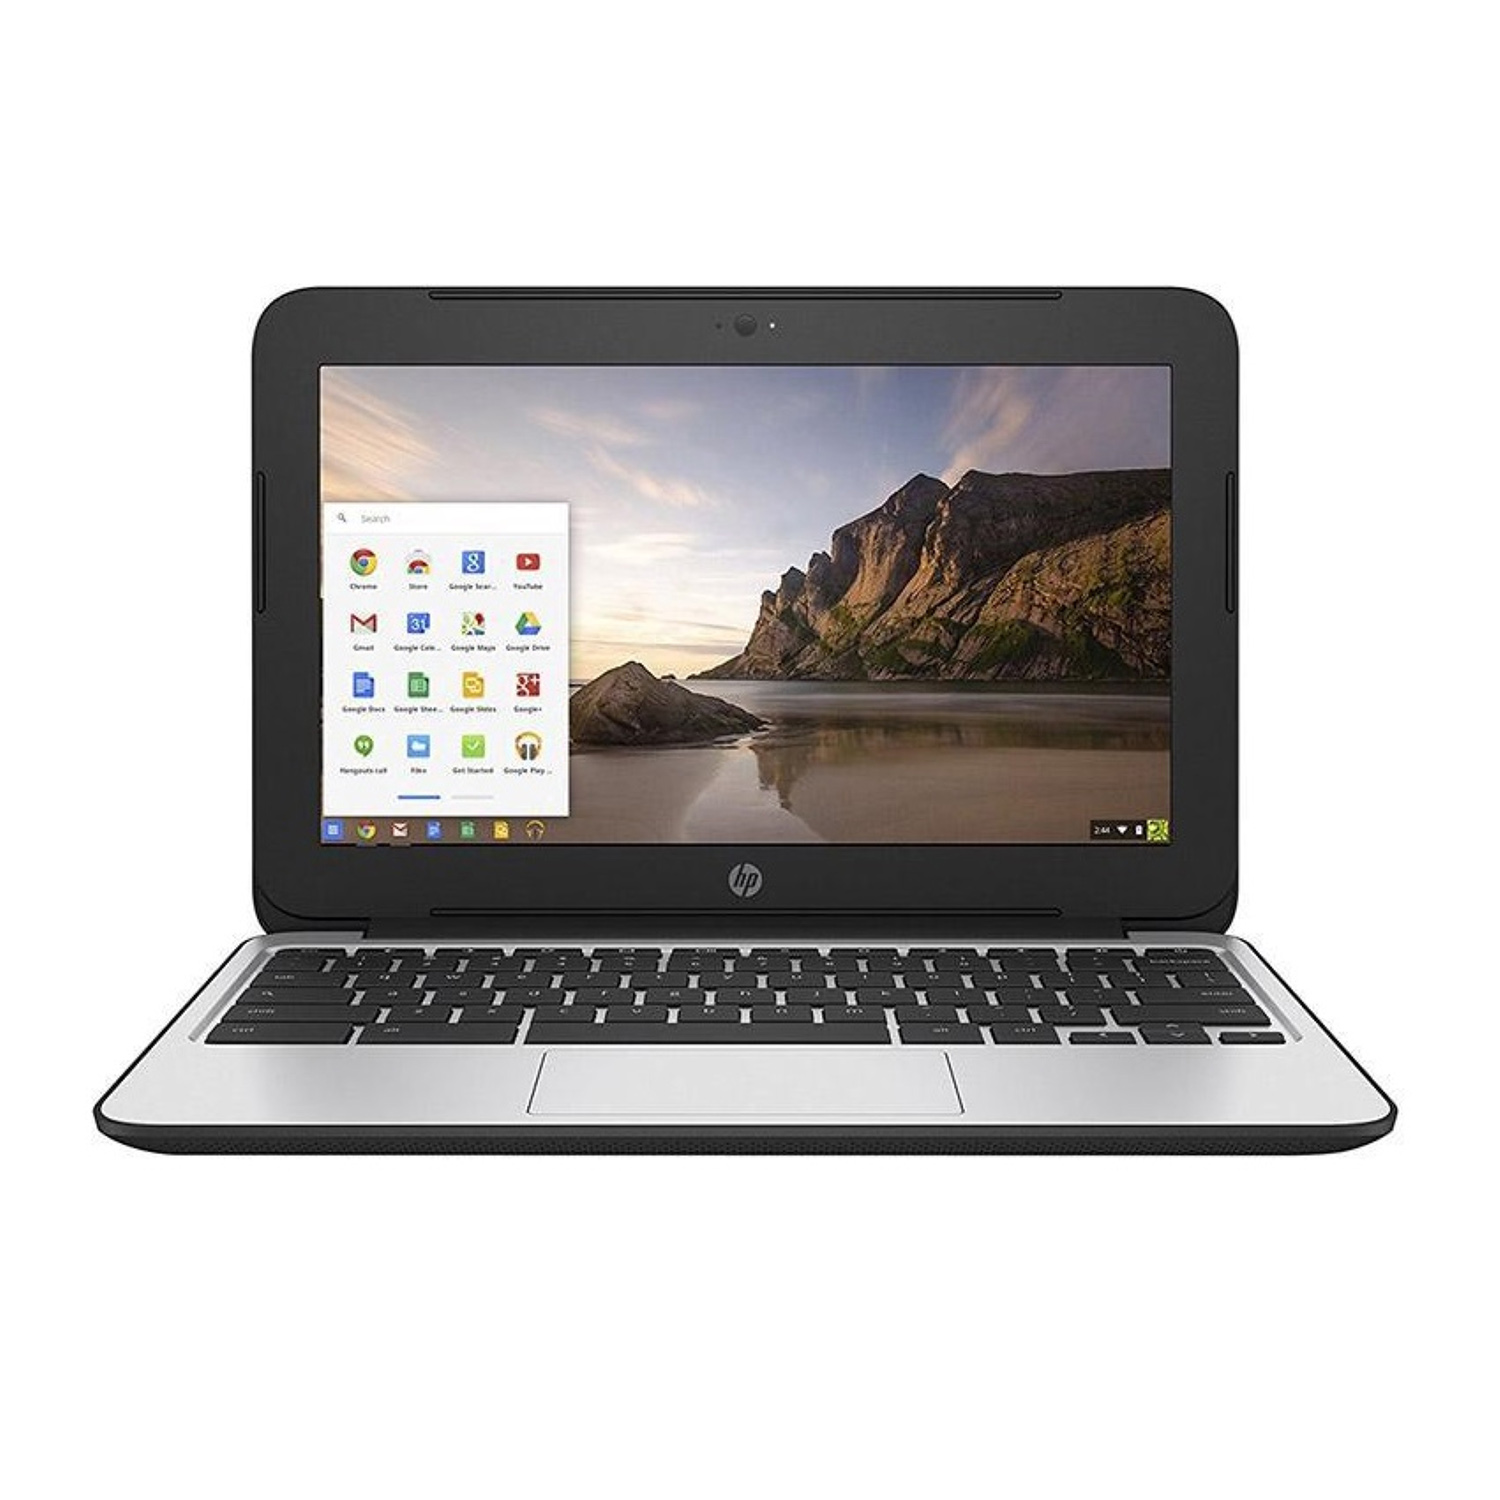 "Refurbished HP Chromebook 11 G3 11.6"" Chromebook Intel Celeron N2840 Dual Core 2GB 16GB SSD"